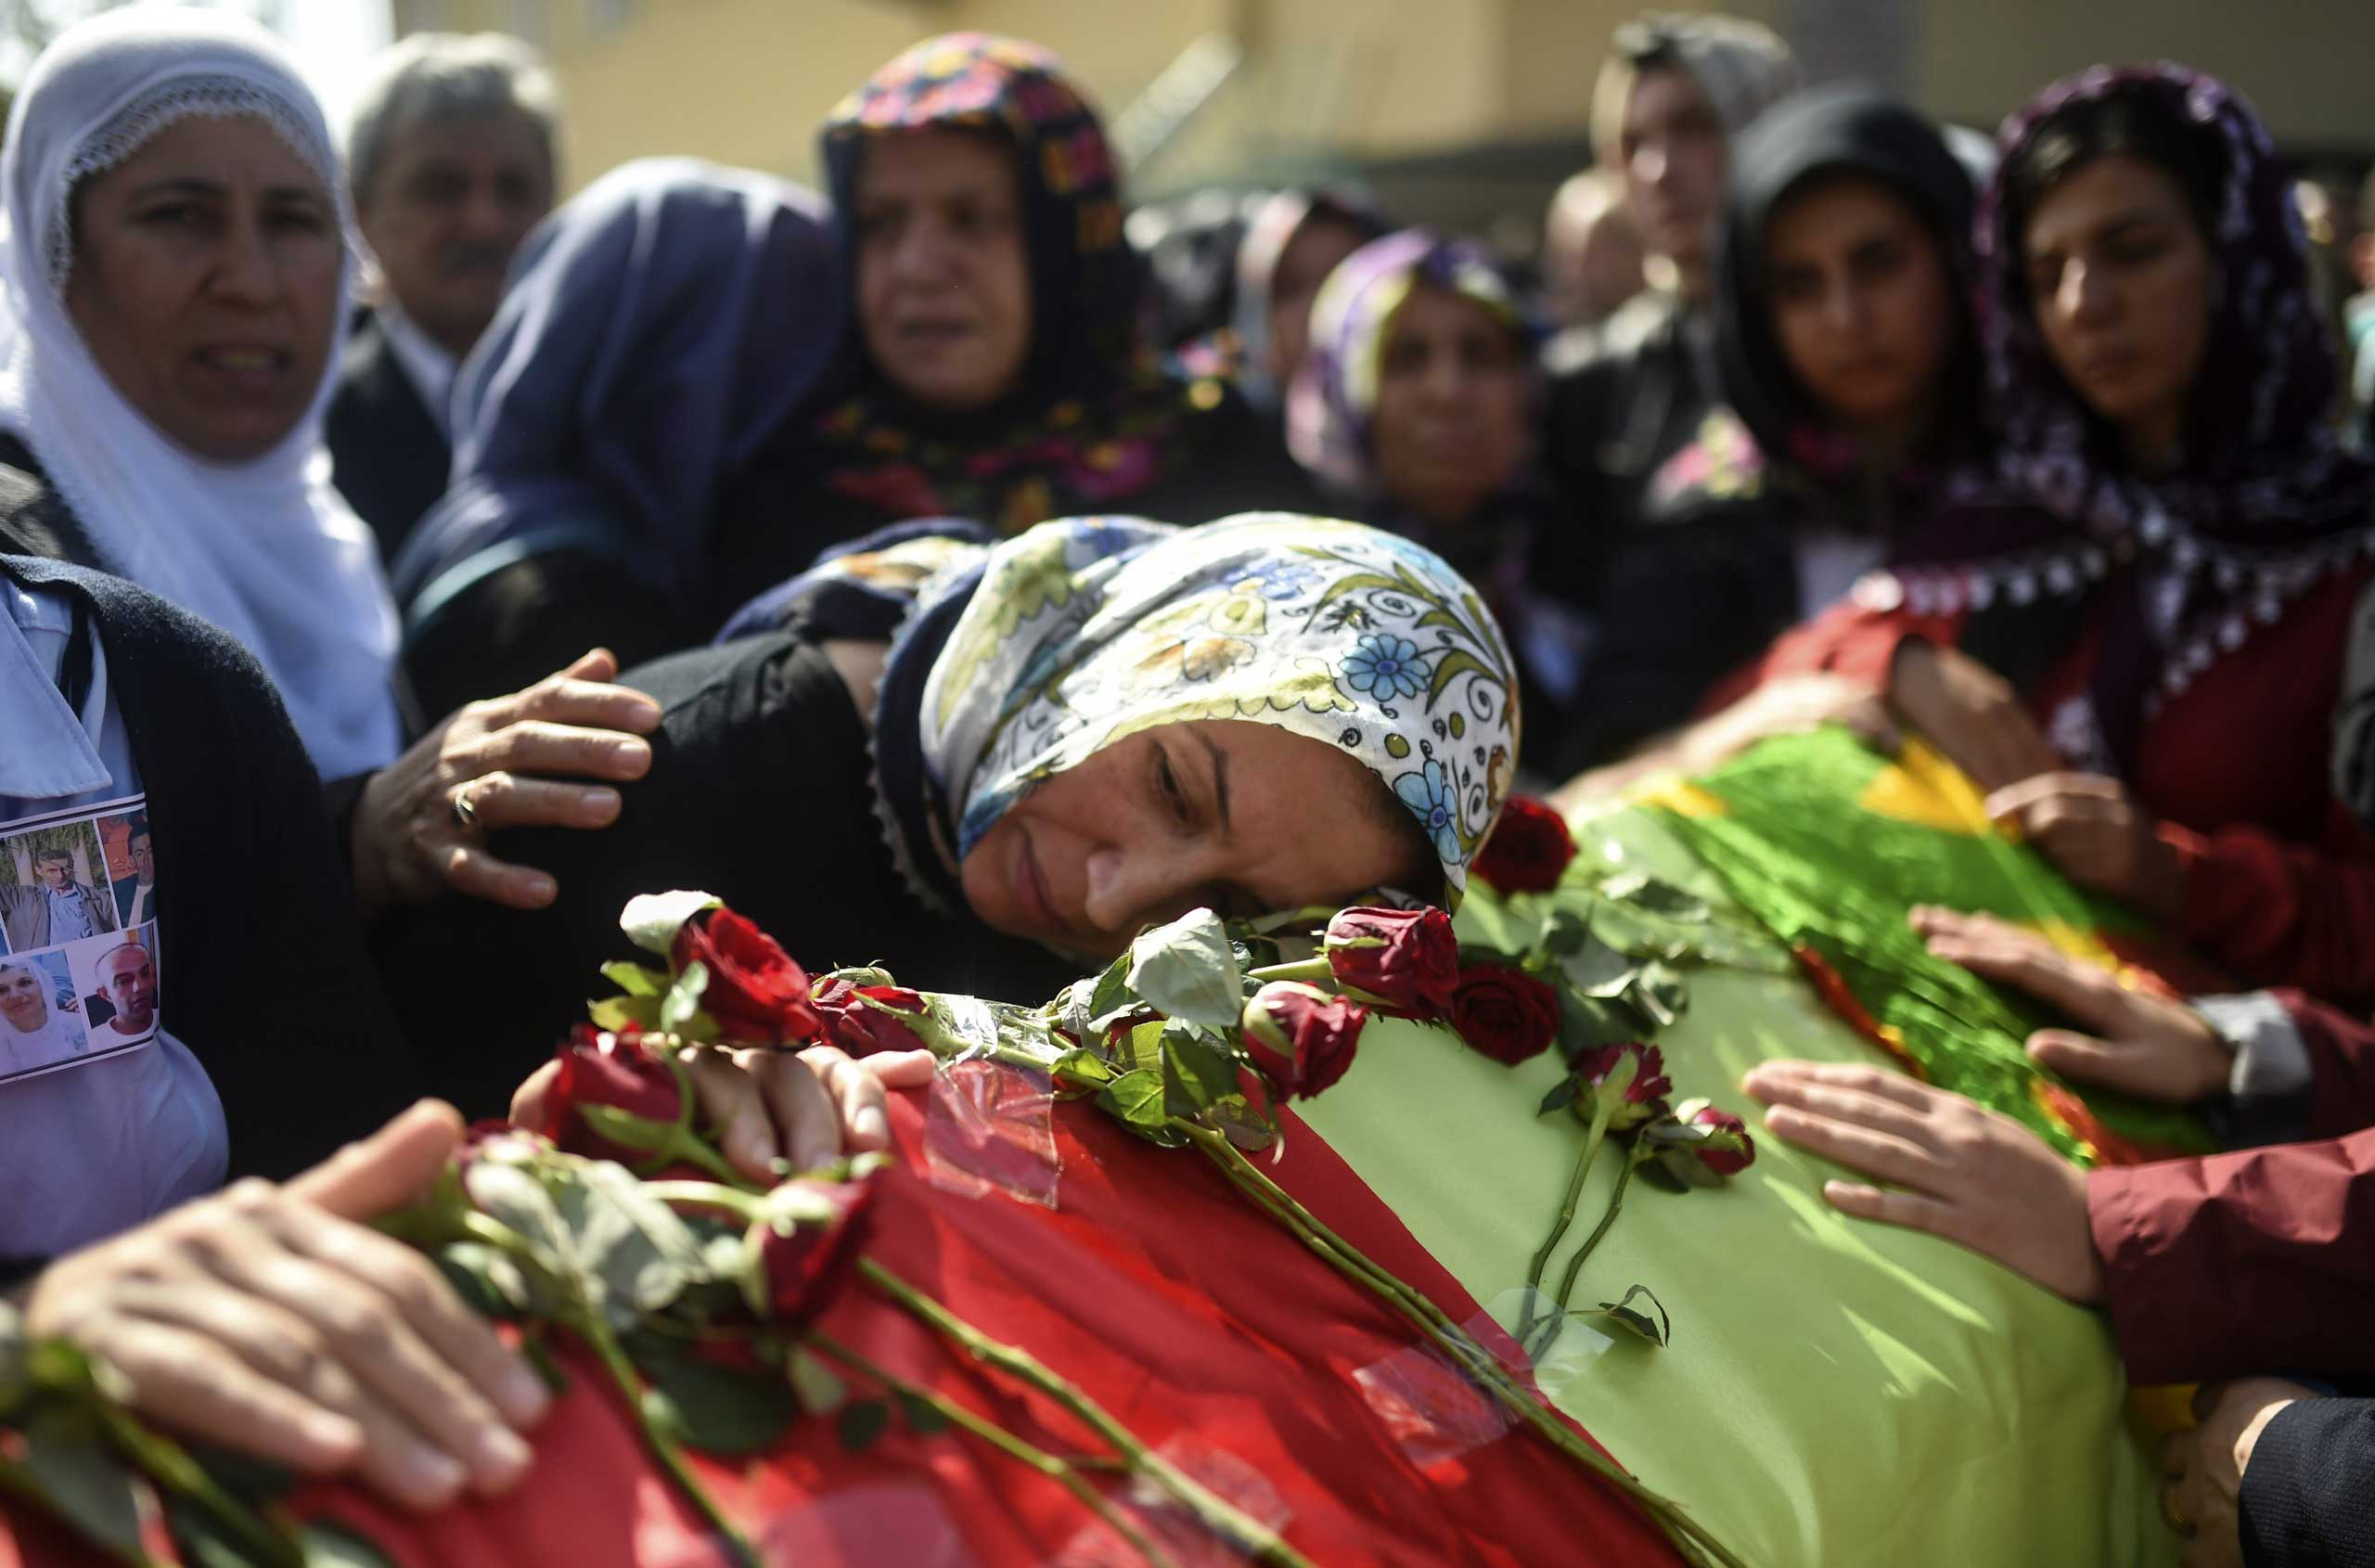 Relatives mourn near the coffin of a victim of the twin bombings in Ankara, during the funeral in Istanbul on Oct. 12, 2015.